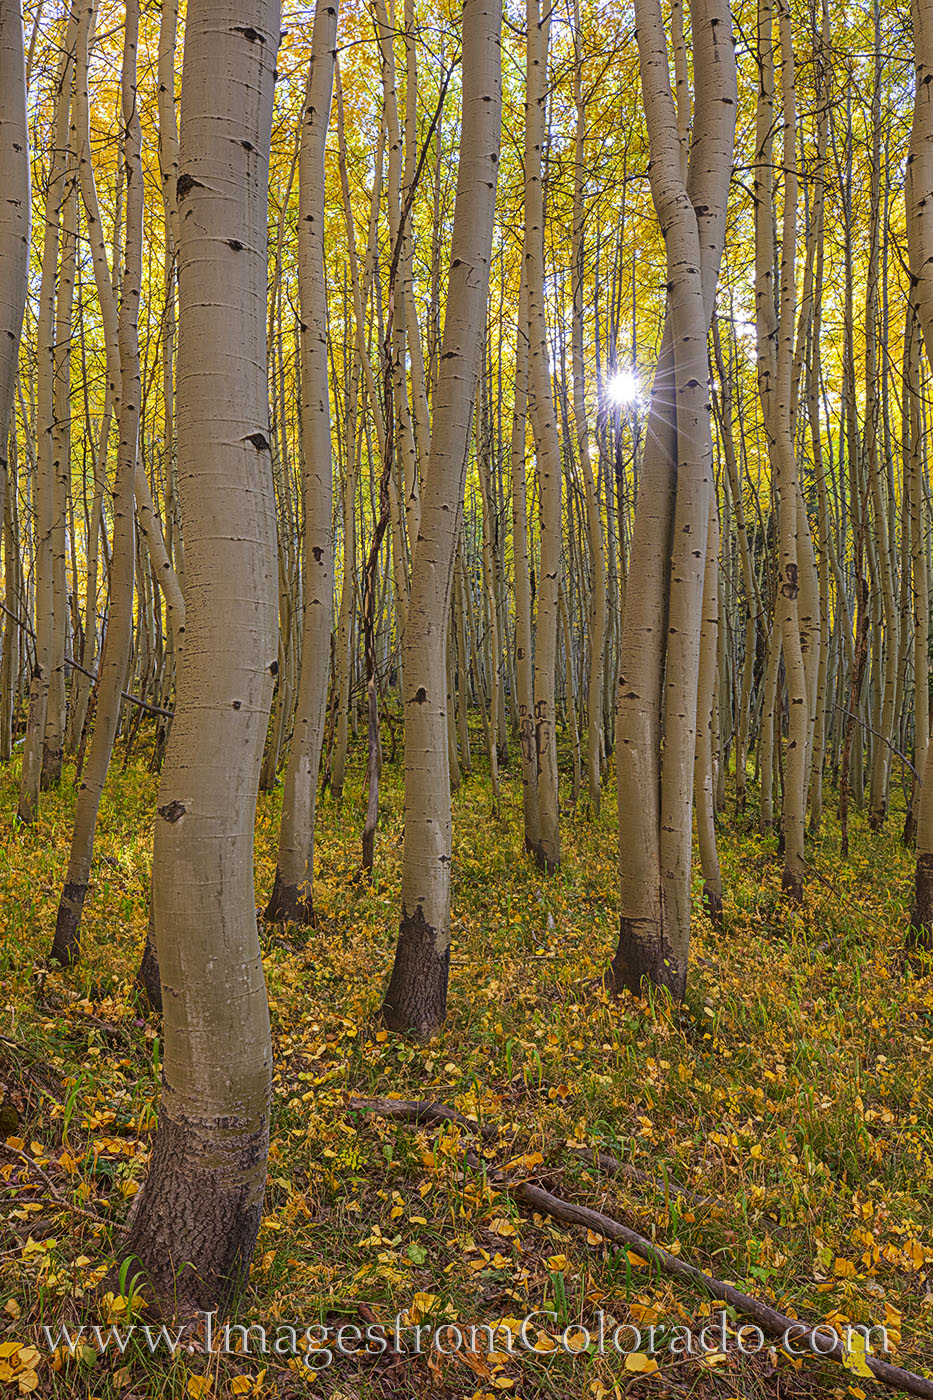 aspen, sunlight, sunburst, october, fall, autumn, san juans, forest, morning, photo